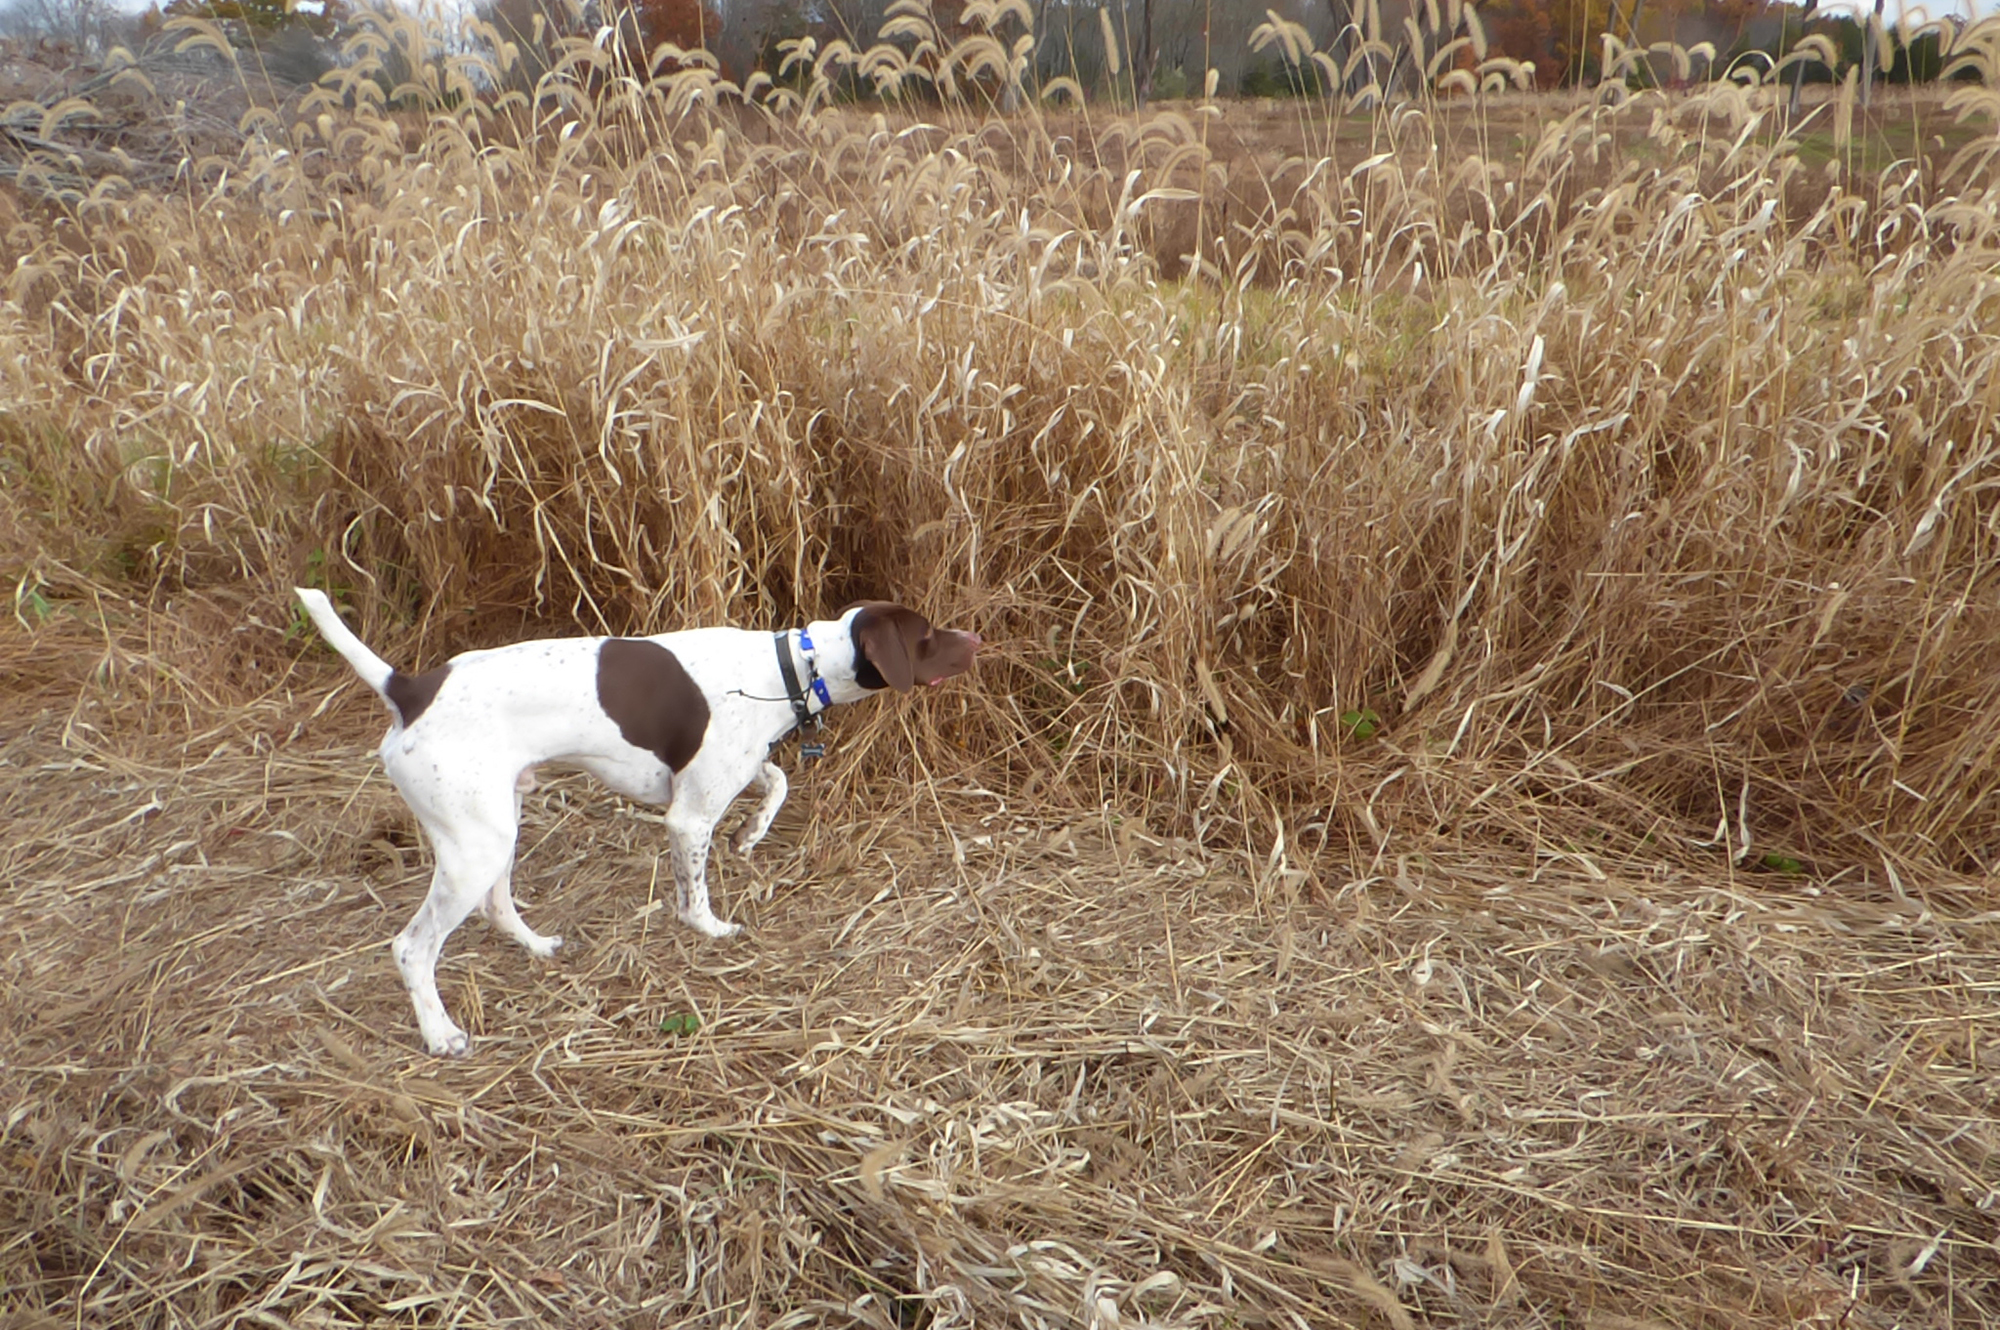 Hunting Dog Pointing